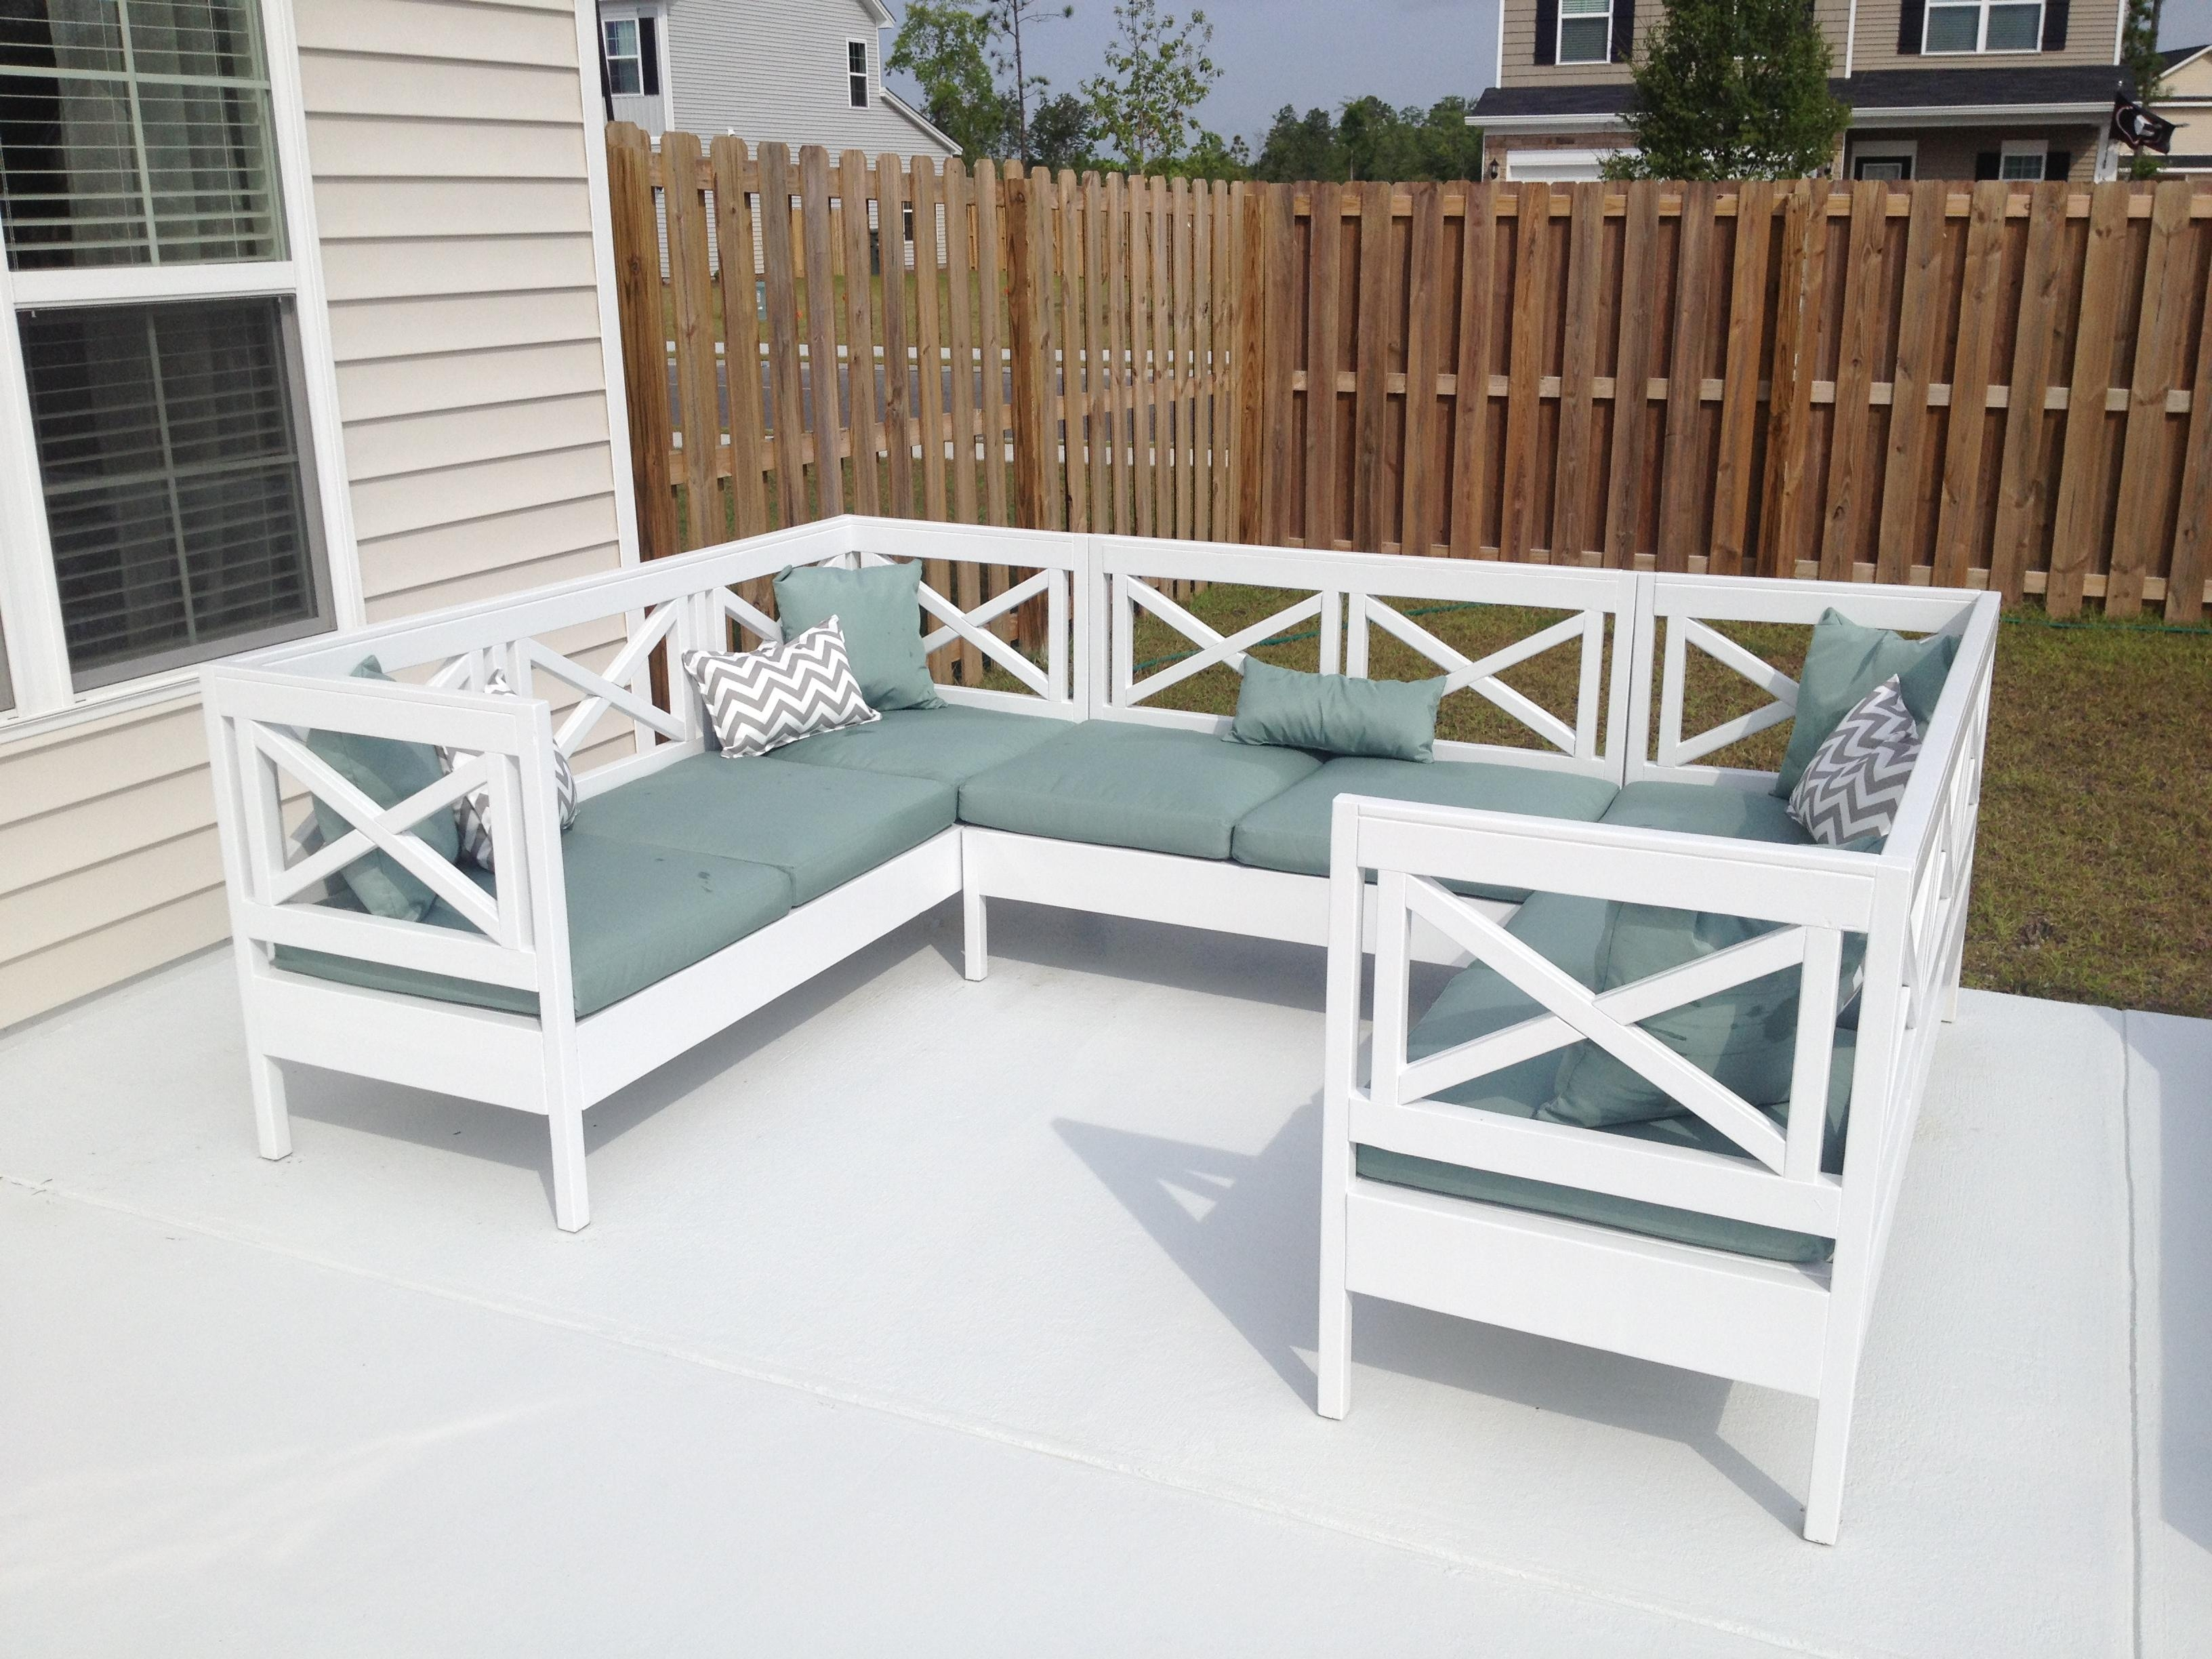 Ana White | Weatherly Outdoor Sectional! – Diy Projects Inside Ana White Outdoor Sectional Sofas (View 6 of 20)